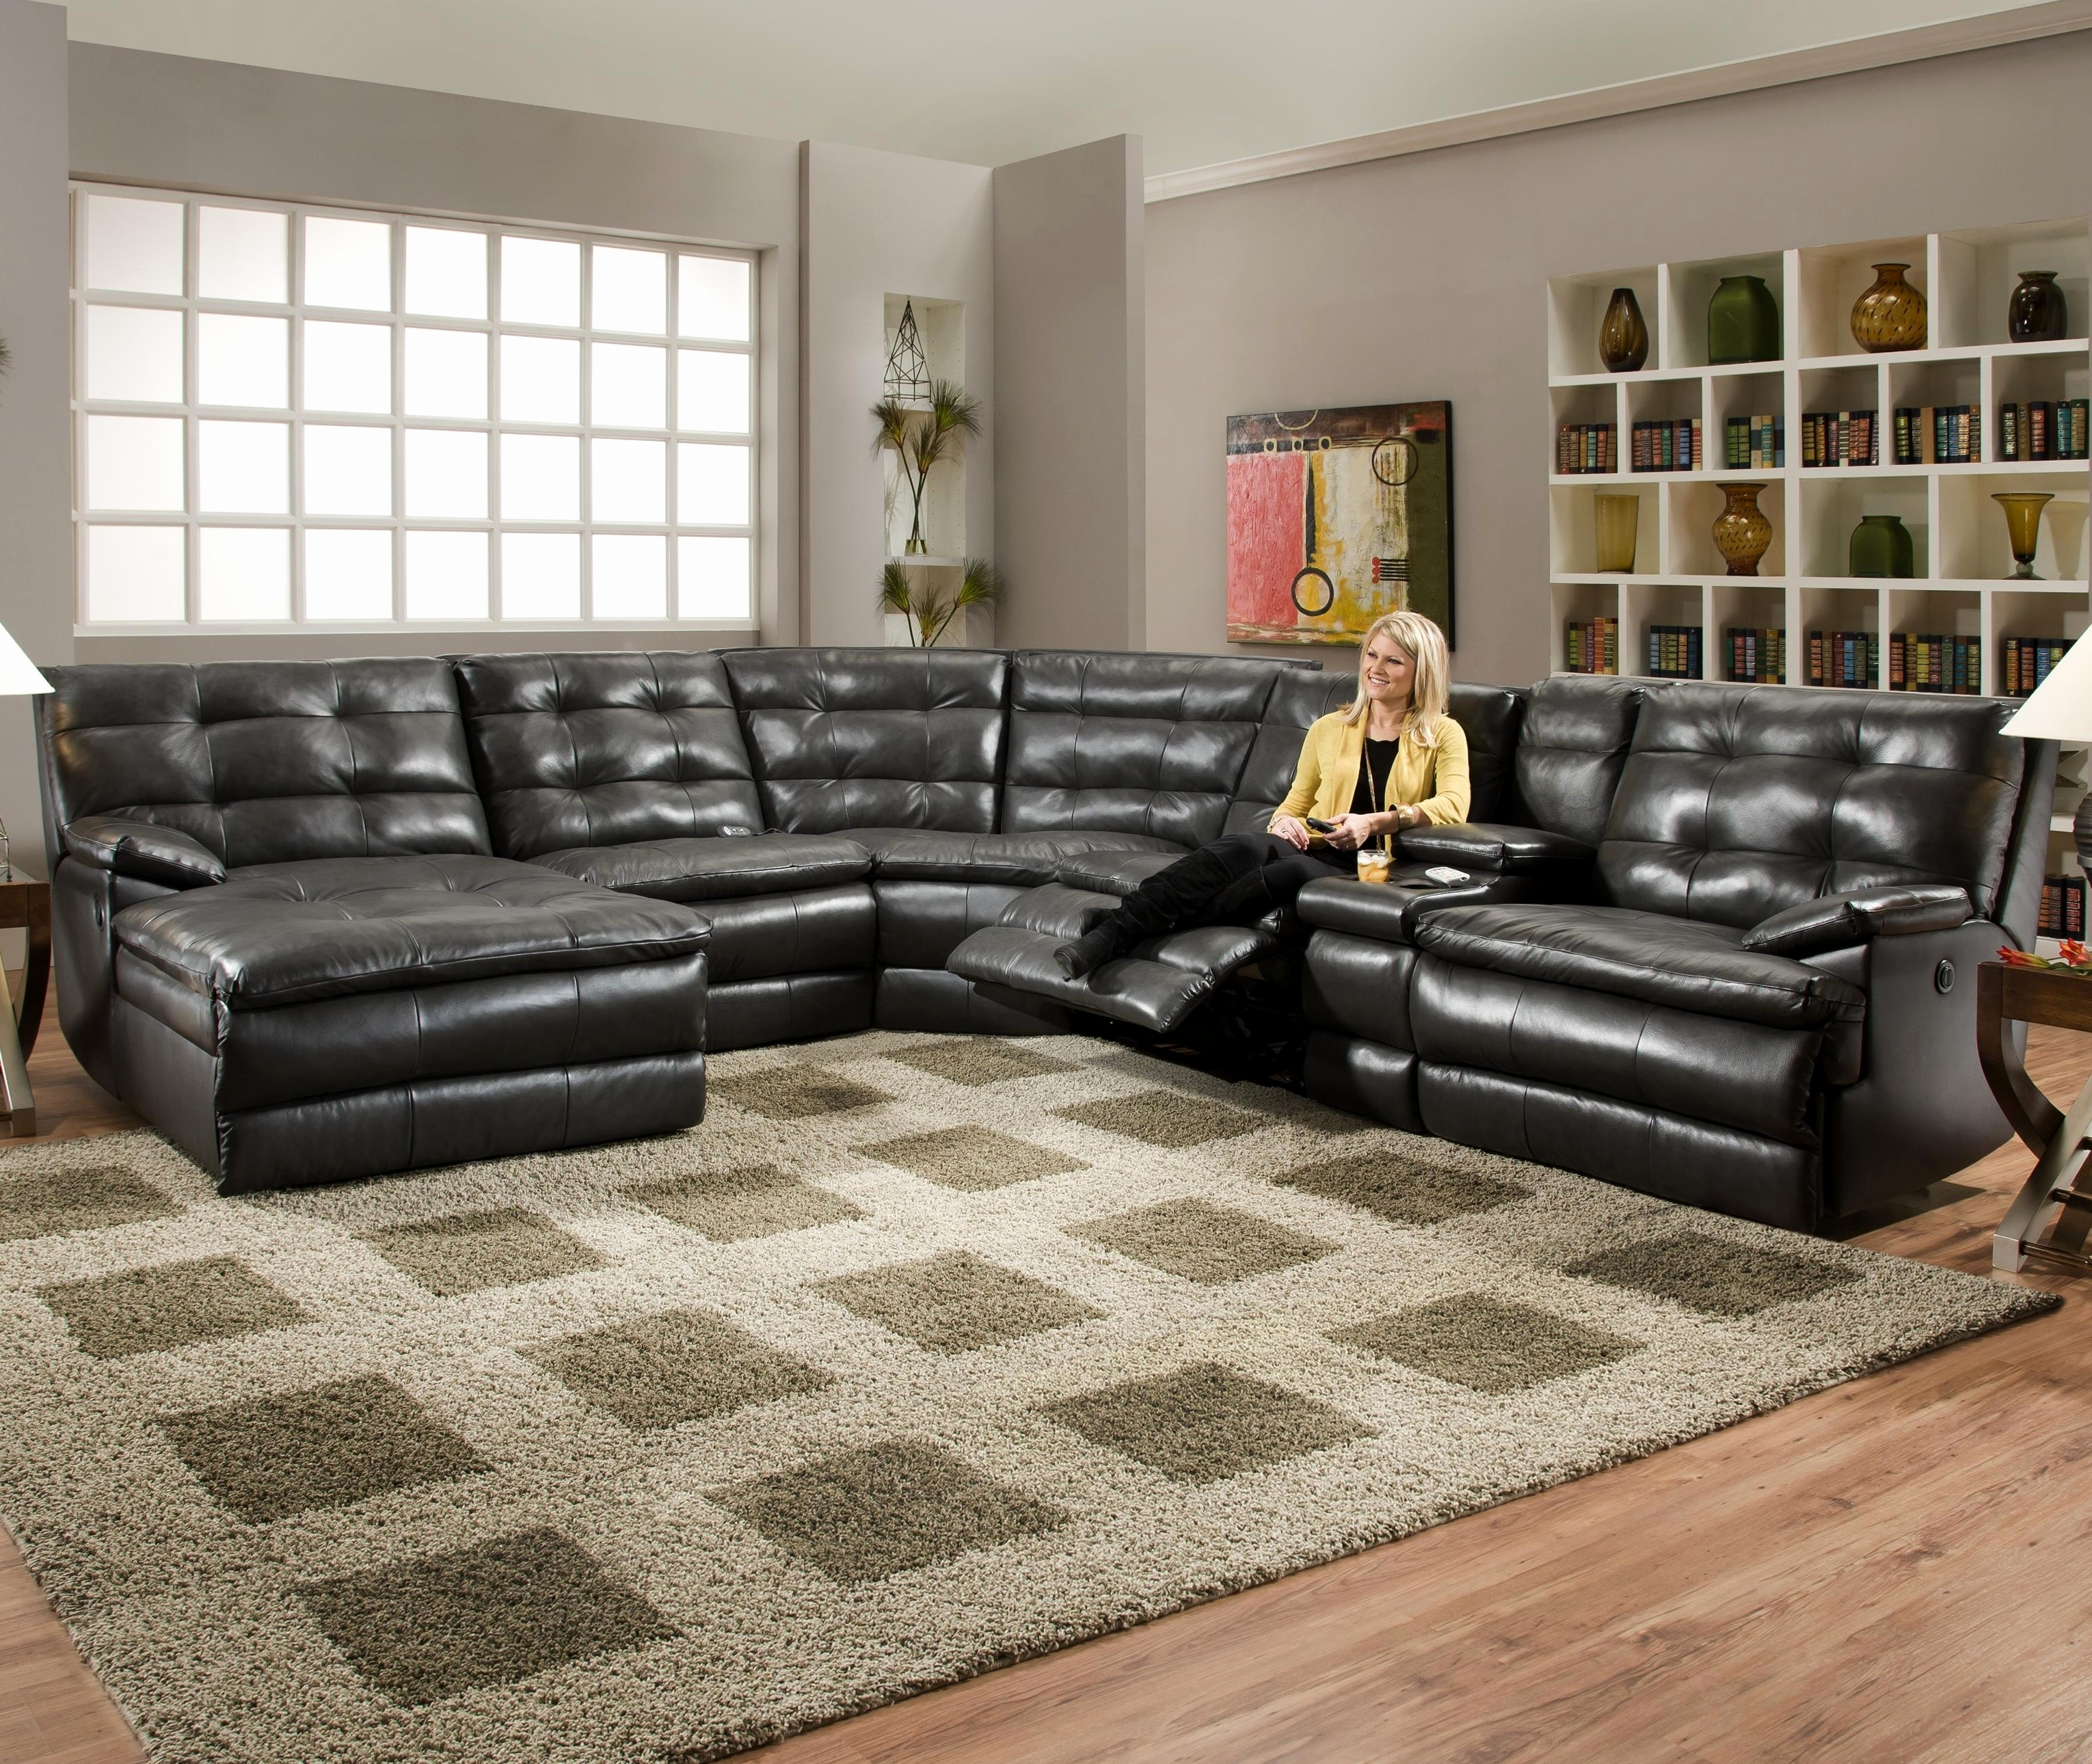 Awesome Modern Curved Sectional Sofa 2018 – Couches Ideas For Latest Curved Sectional Sofas With Recliner (View 2 of 20)